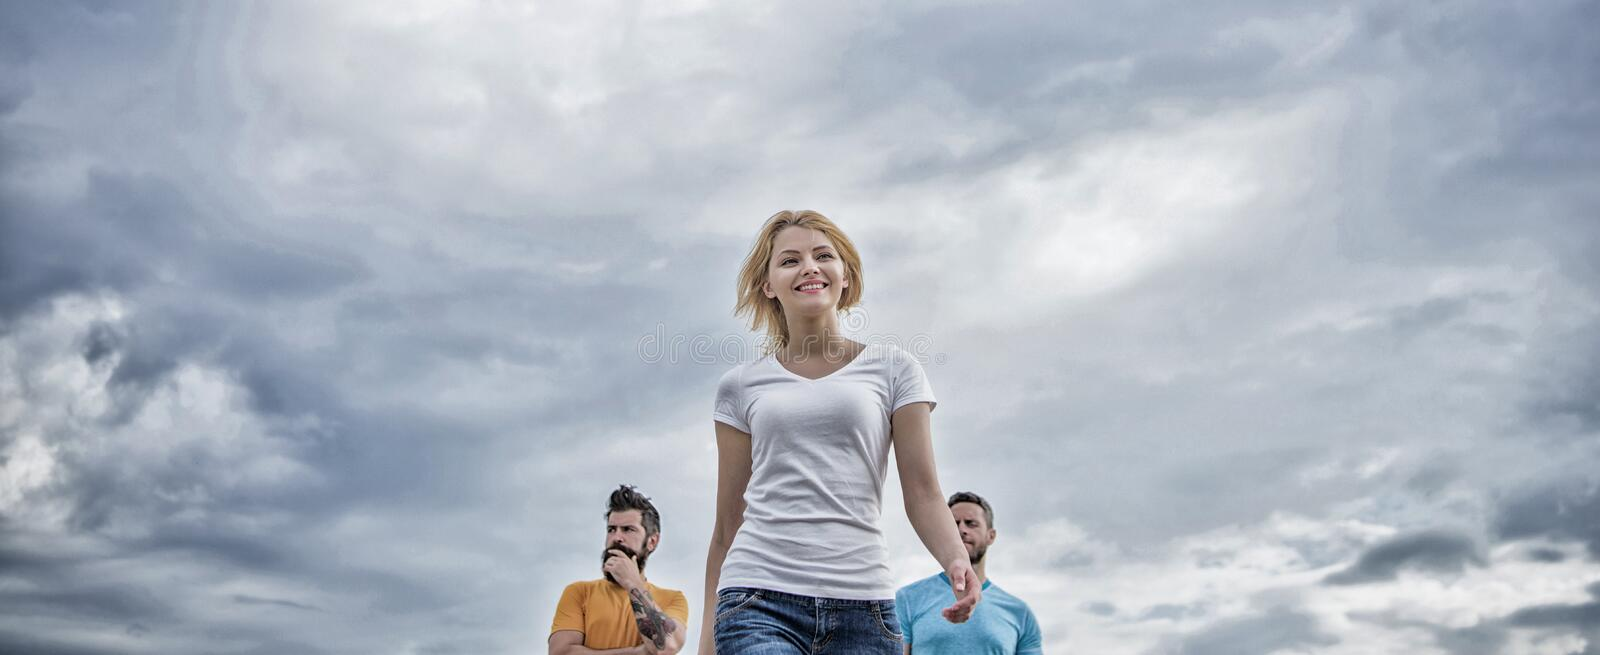 Woman in front of men feel confident. Moving forward support male team. What makes successful female leader. Girl leader. Qualities possess naturally stock photos